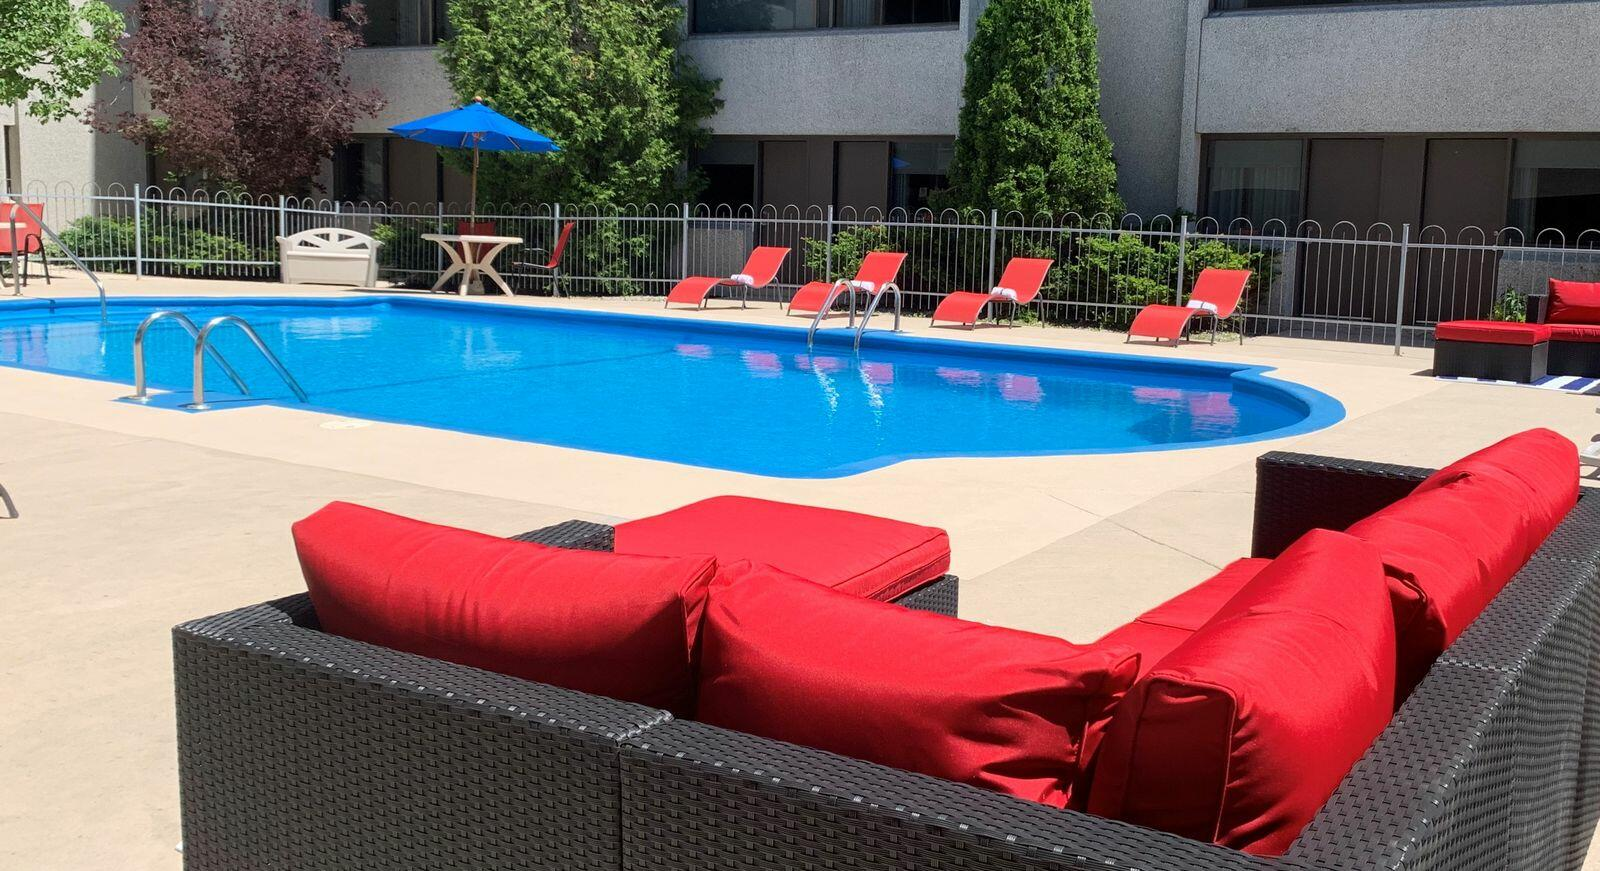 Patio seating by outdoor pool.